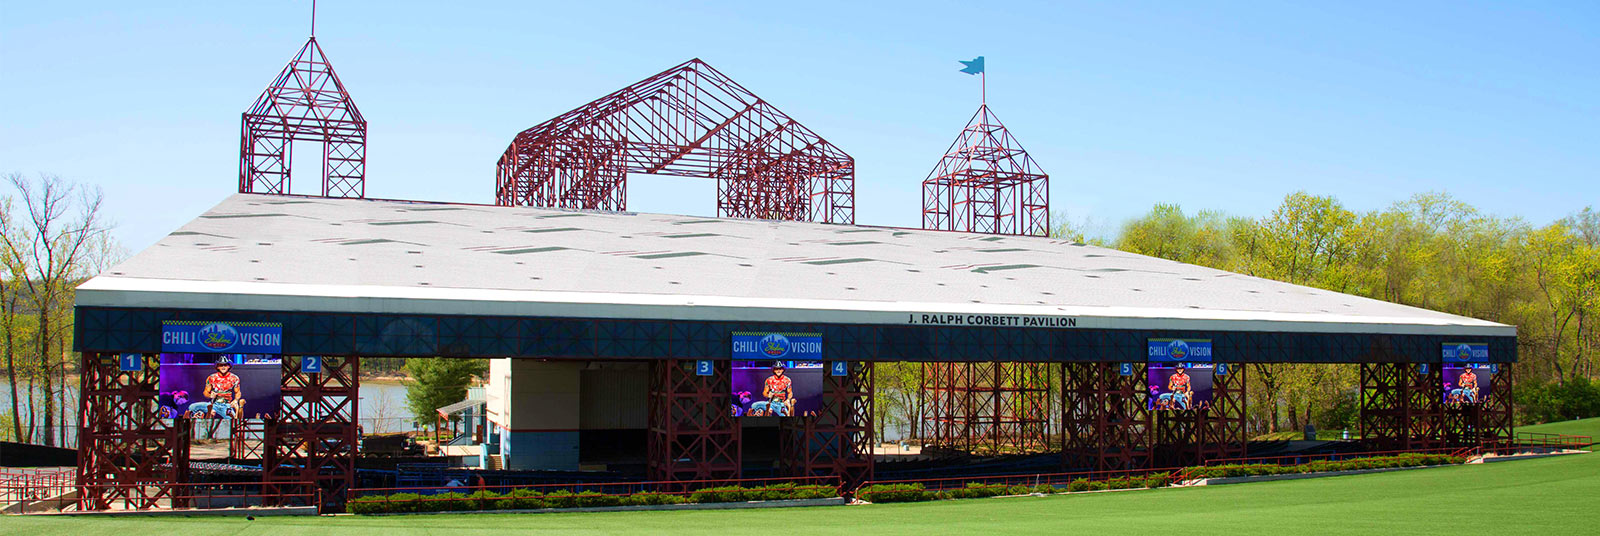 The original, obstructed view of the stage at the Riverbend Music Center J. Ralph Corbett Pavilion in Cincinnati, Ohio.